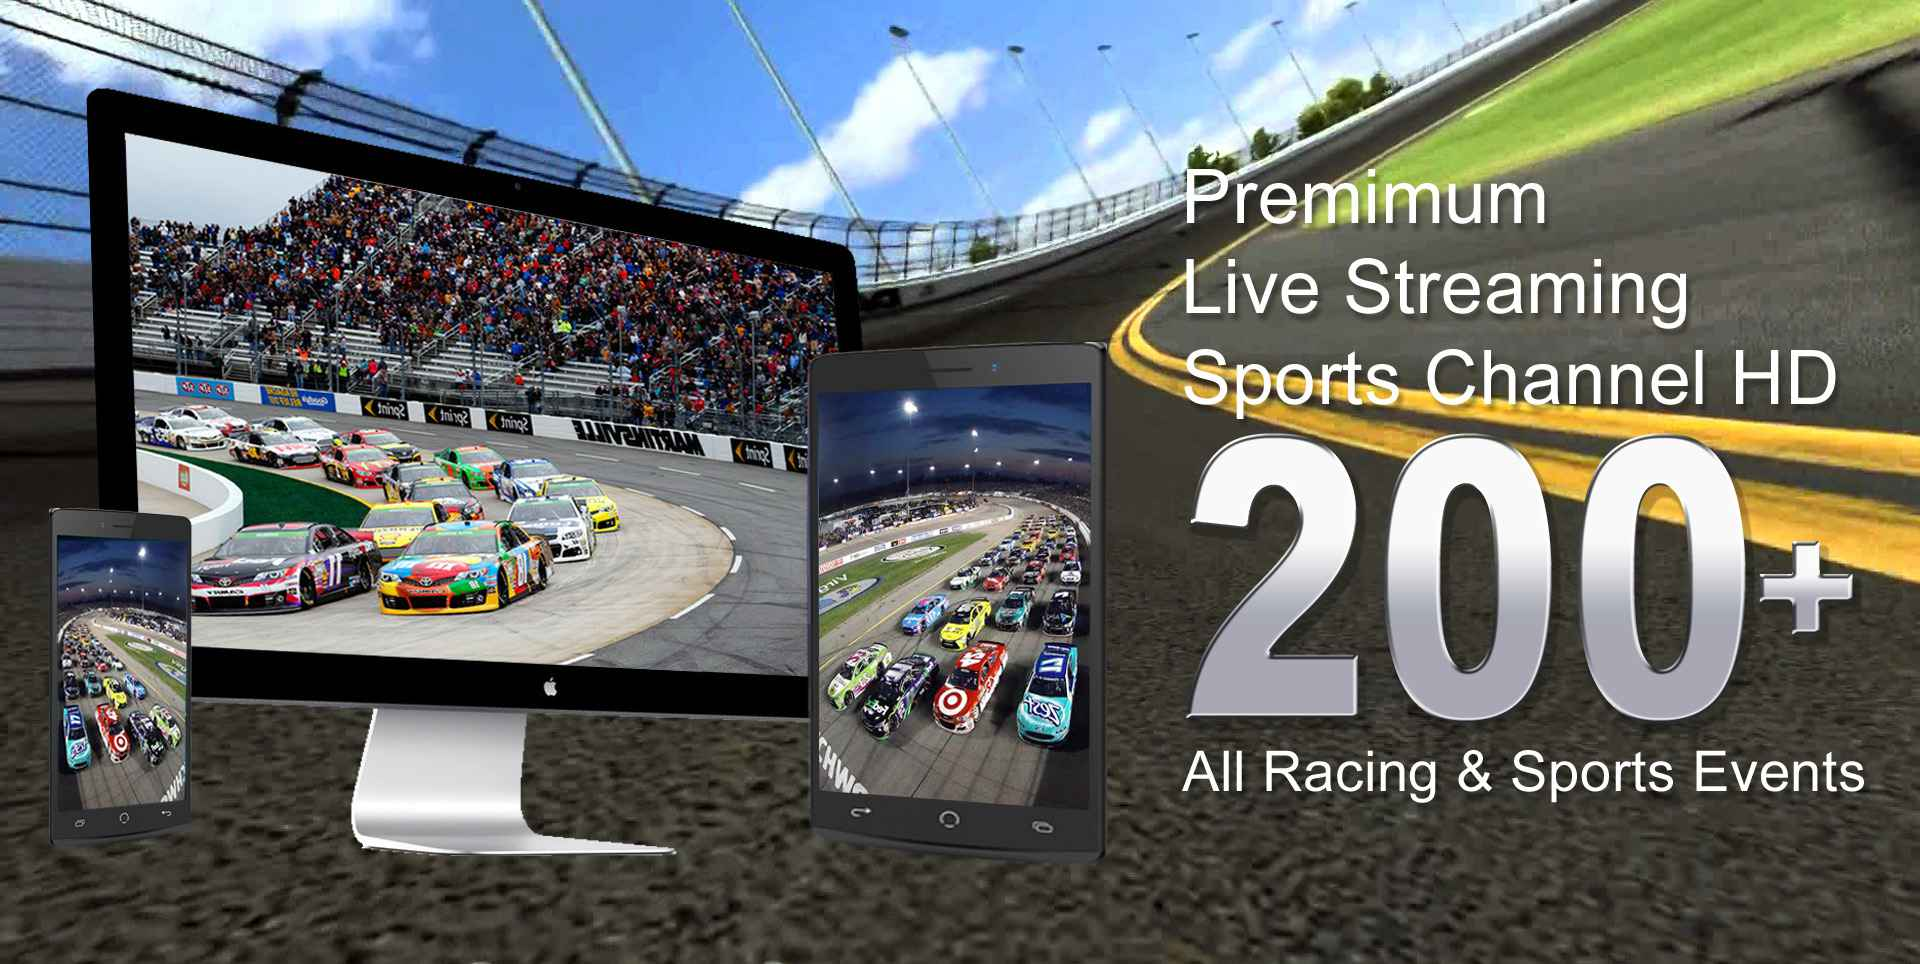 Coca Cola 600 Live at Charlotte Motor Speedway